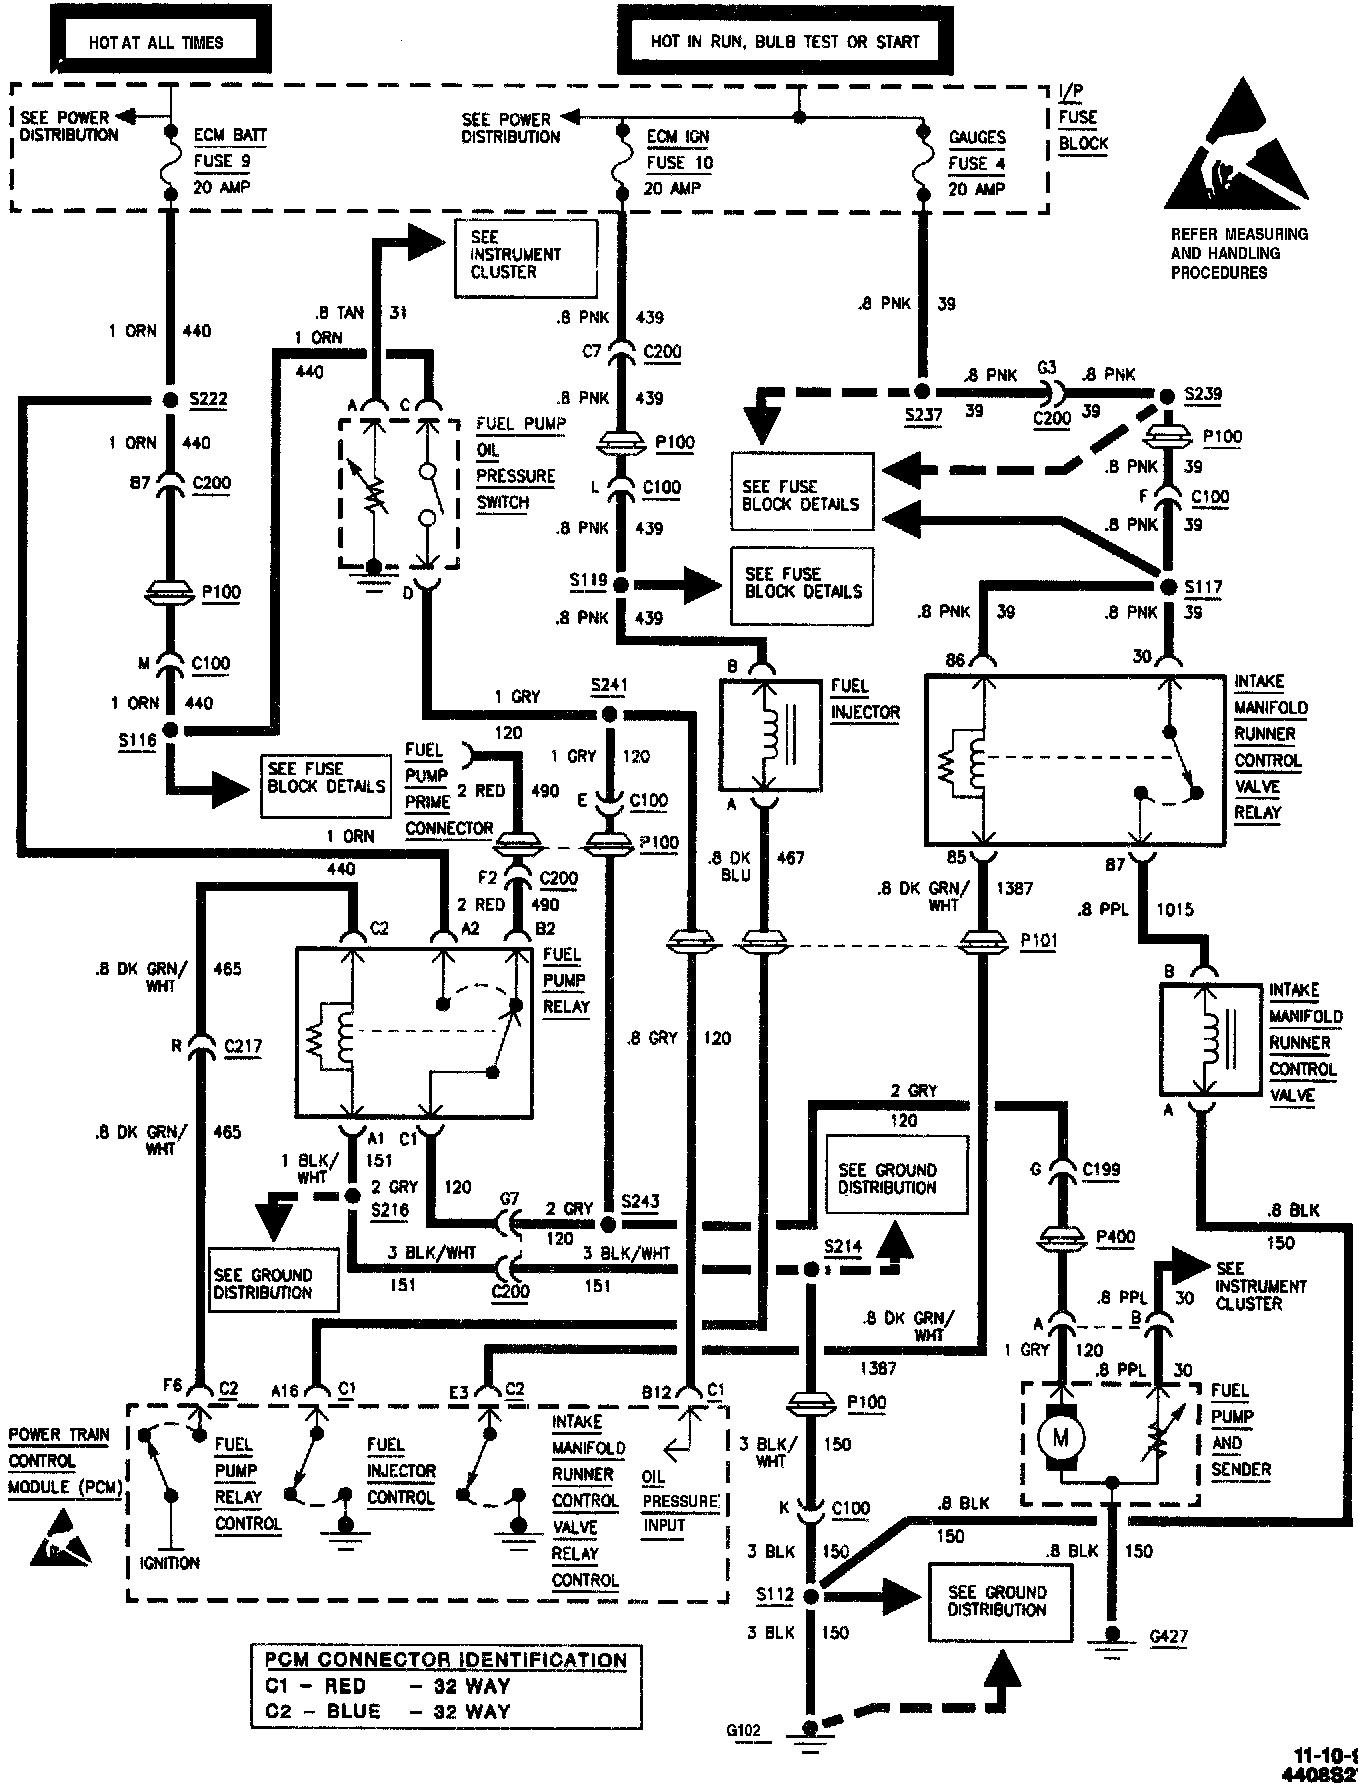 E999C Mack Wiring Diagram | Digital Resources on 2001 dodge truck wiring diagram, mack fuse box diagram, 2006 international 4300 truck wiring diagram, eaton fuller transmission parts diagram,